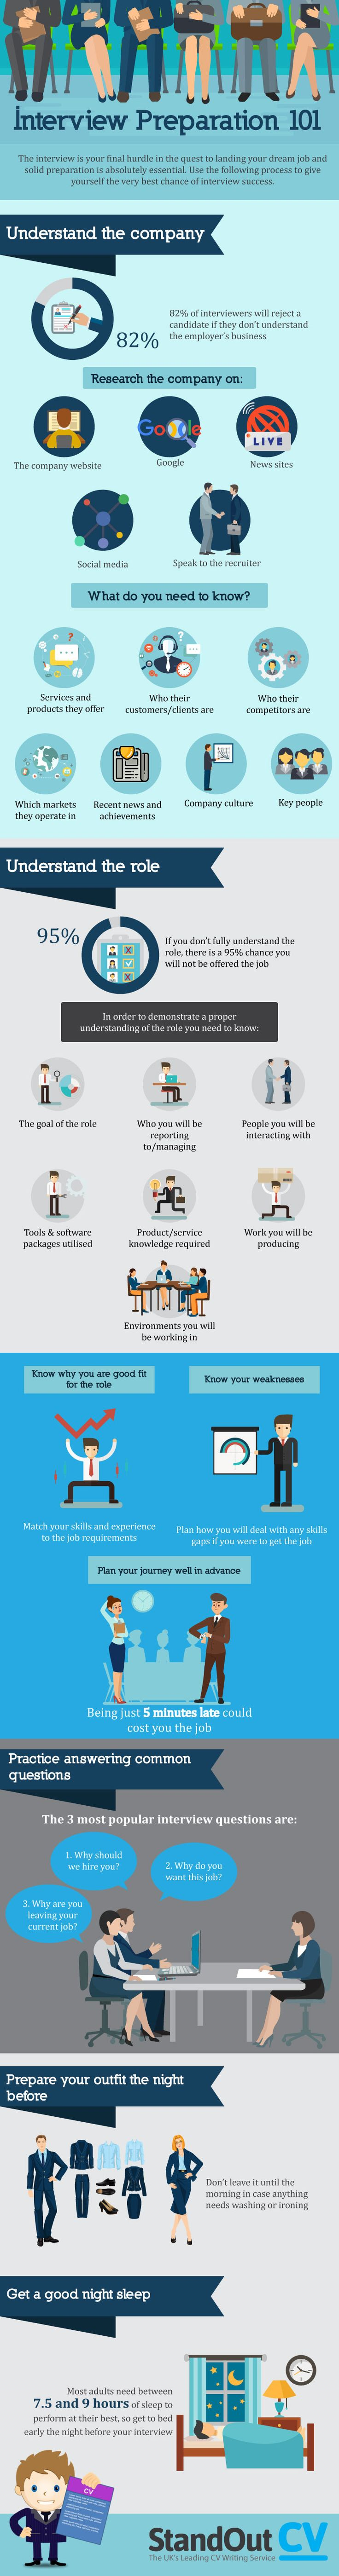 17 best images about fcs career preparation high interview preparation 101 infographic